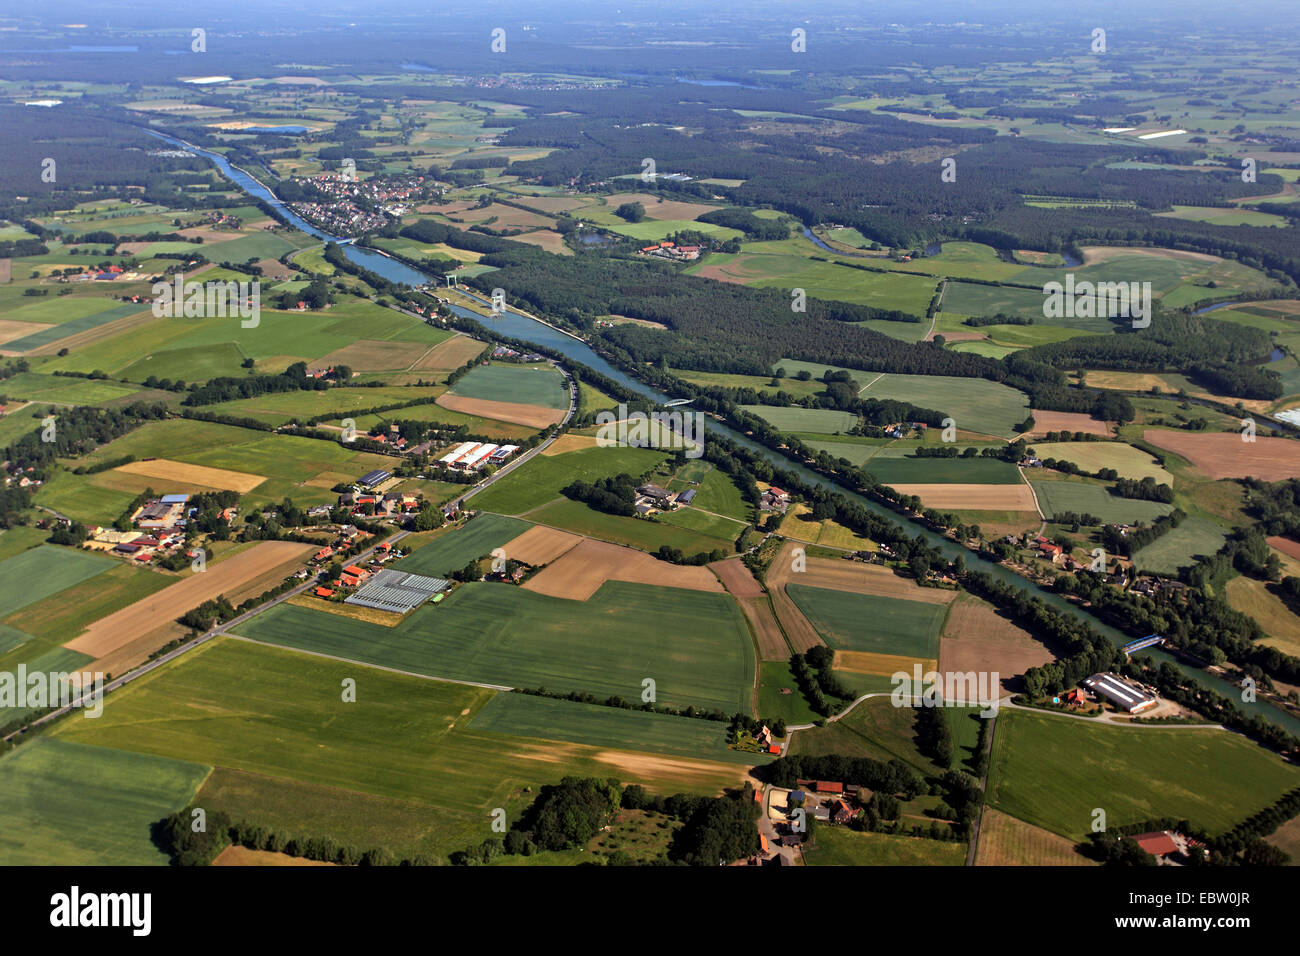 chanal Weser Datteln Kanal with watergate Ahsen, Germany, North Rhine-Westphalia, Ruhr Area, Datteln - Stock Image